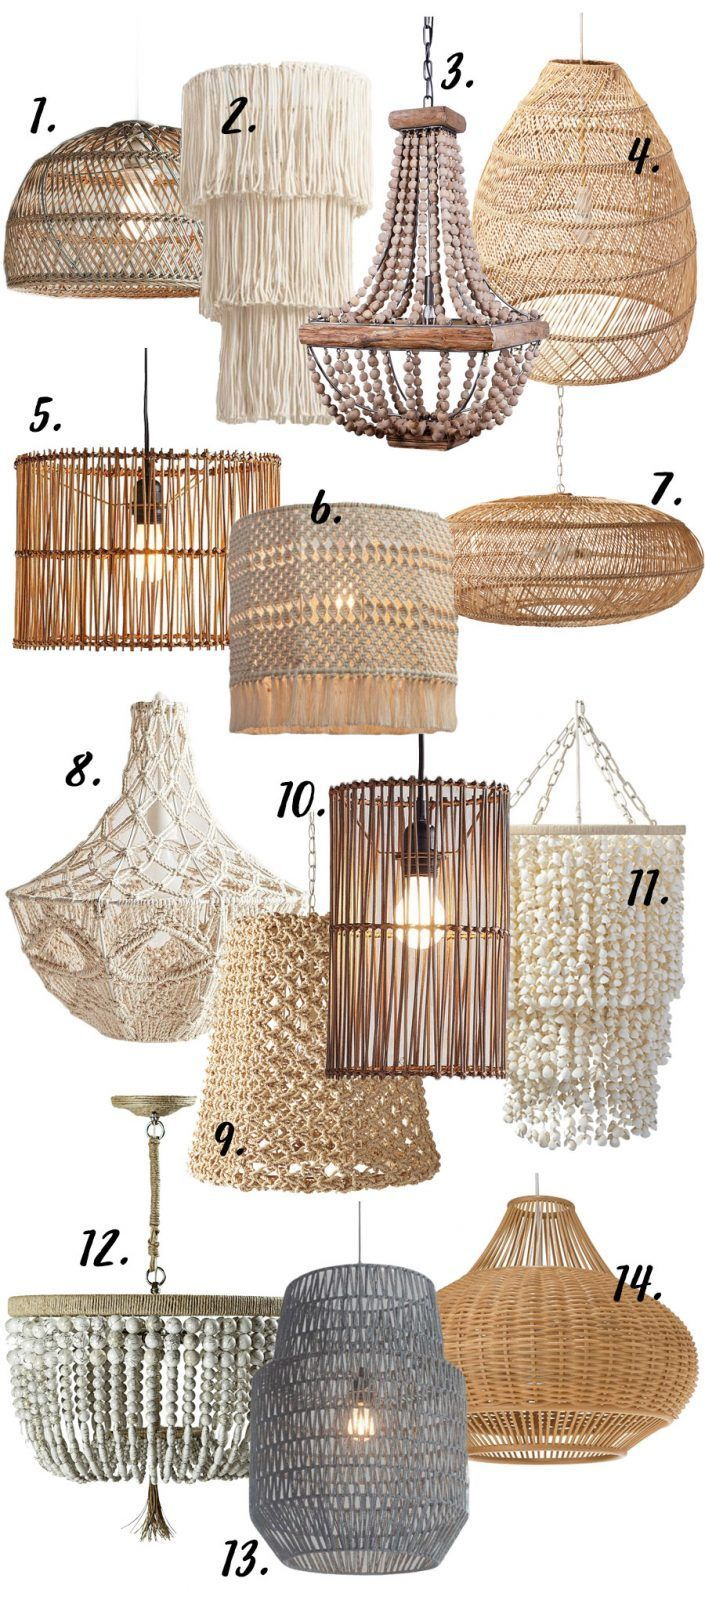 MODERN BOHO CHANDELIERS & PENDANT LIGHTS – 14 CHIC OPTIONS images